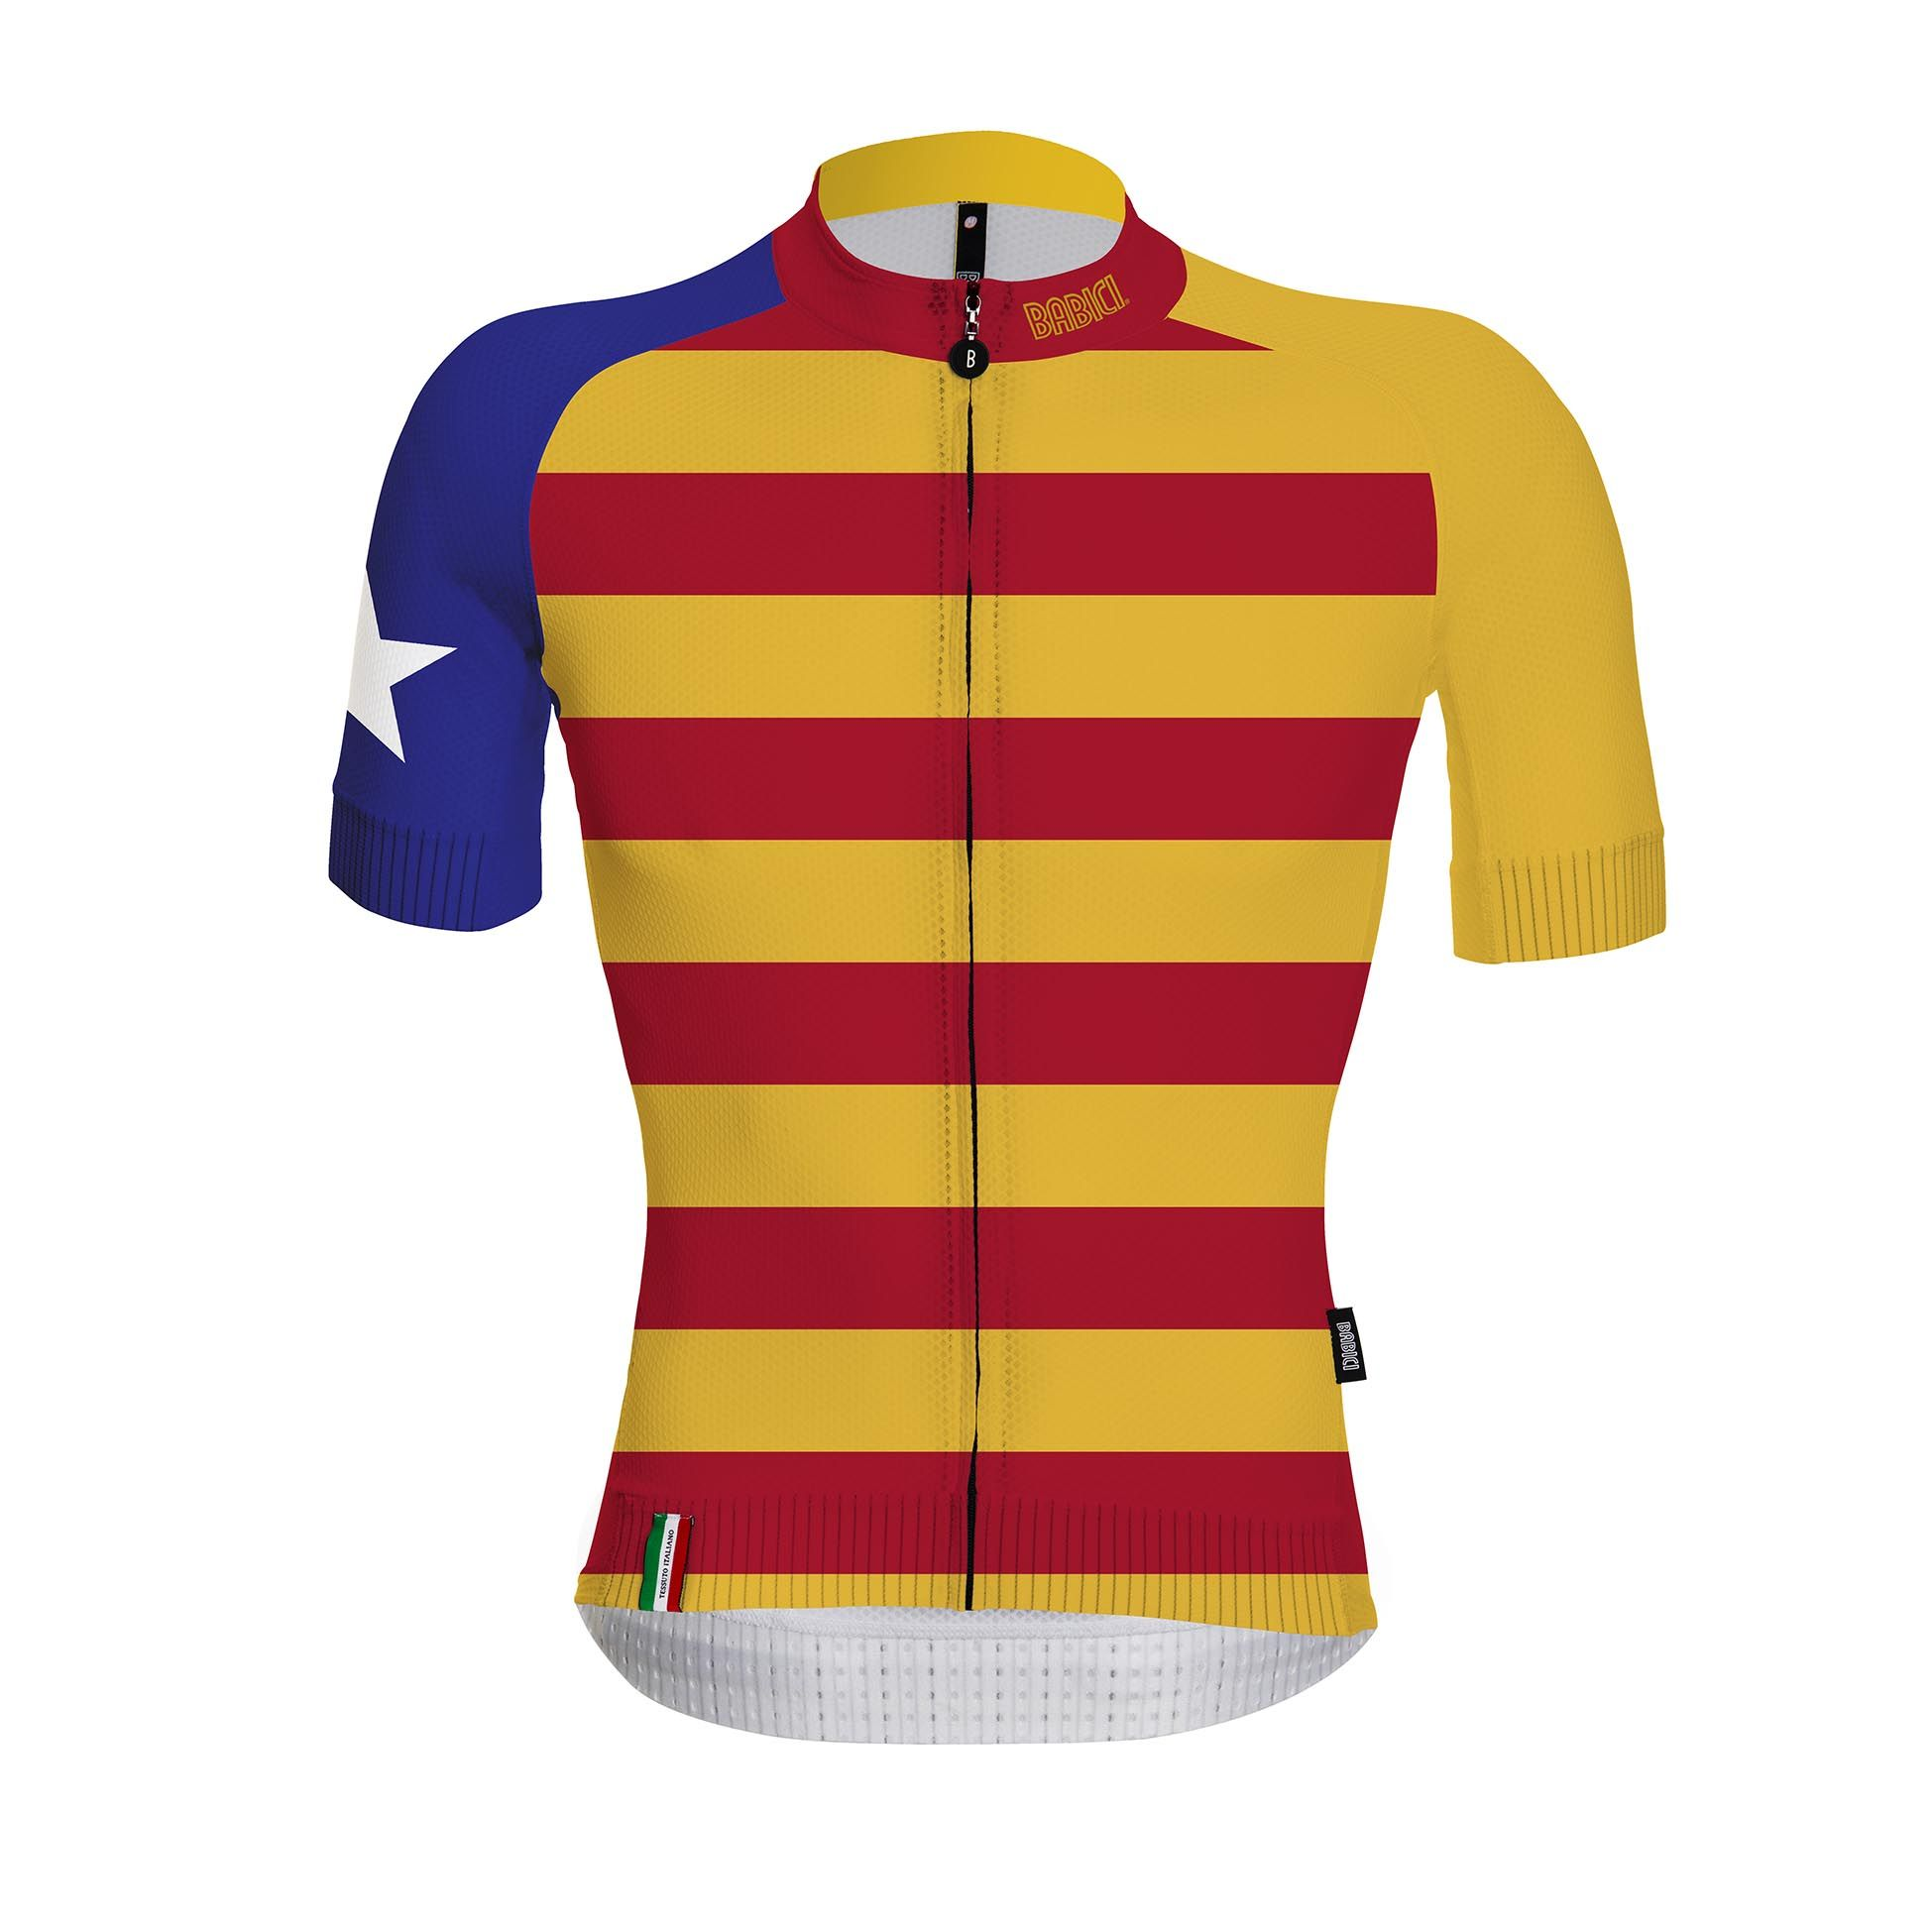 668433c94 Premium Quality Cycling Clothing   Apparel by Babici. Catalonia jersey by  Babici